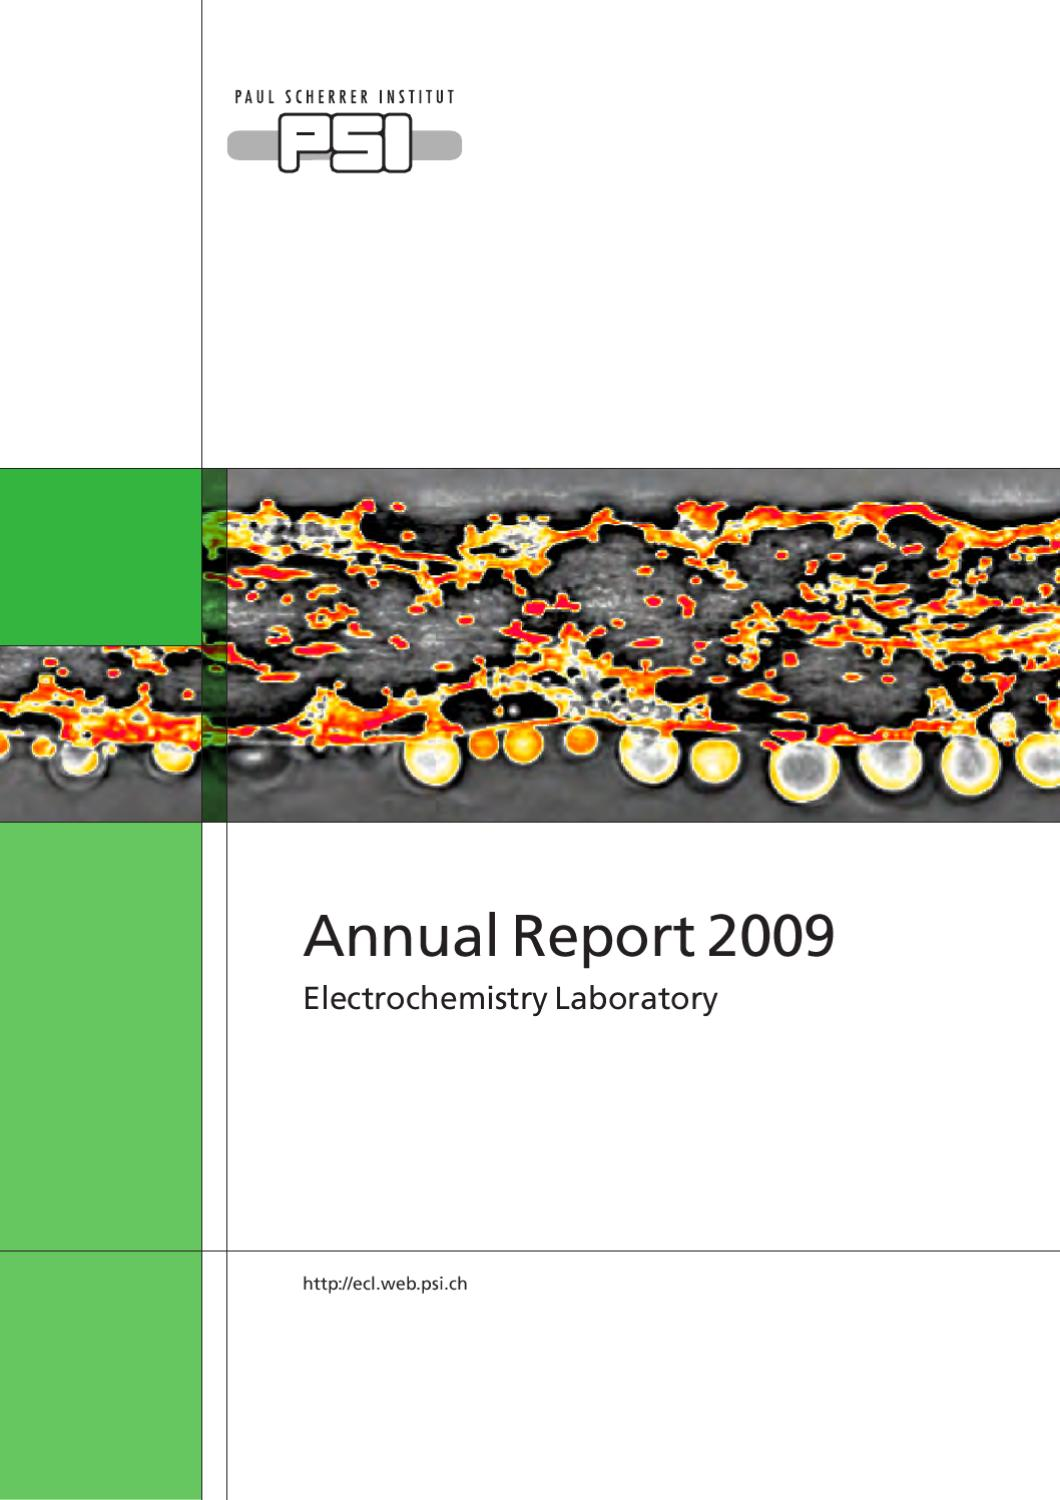 Ecl Annual Report 2009 By Paul Scherrer Institut Issuu Circuit Simulator Nor Or